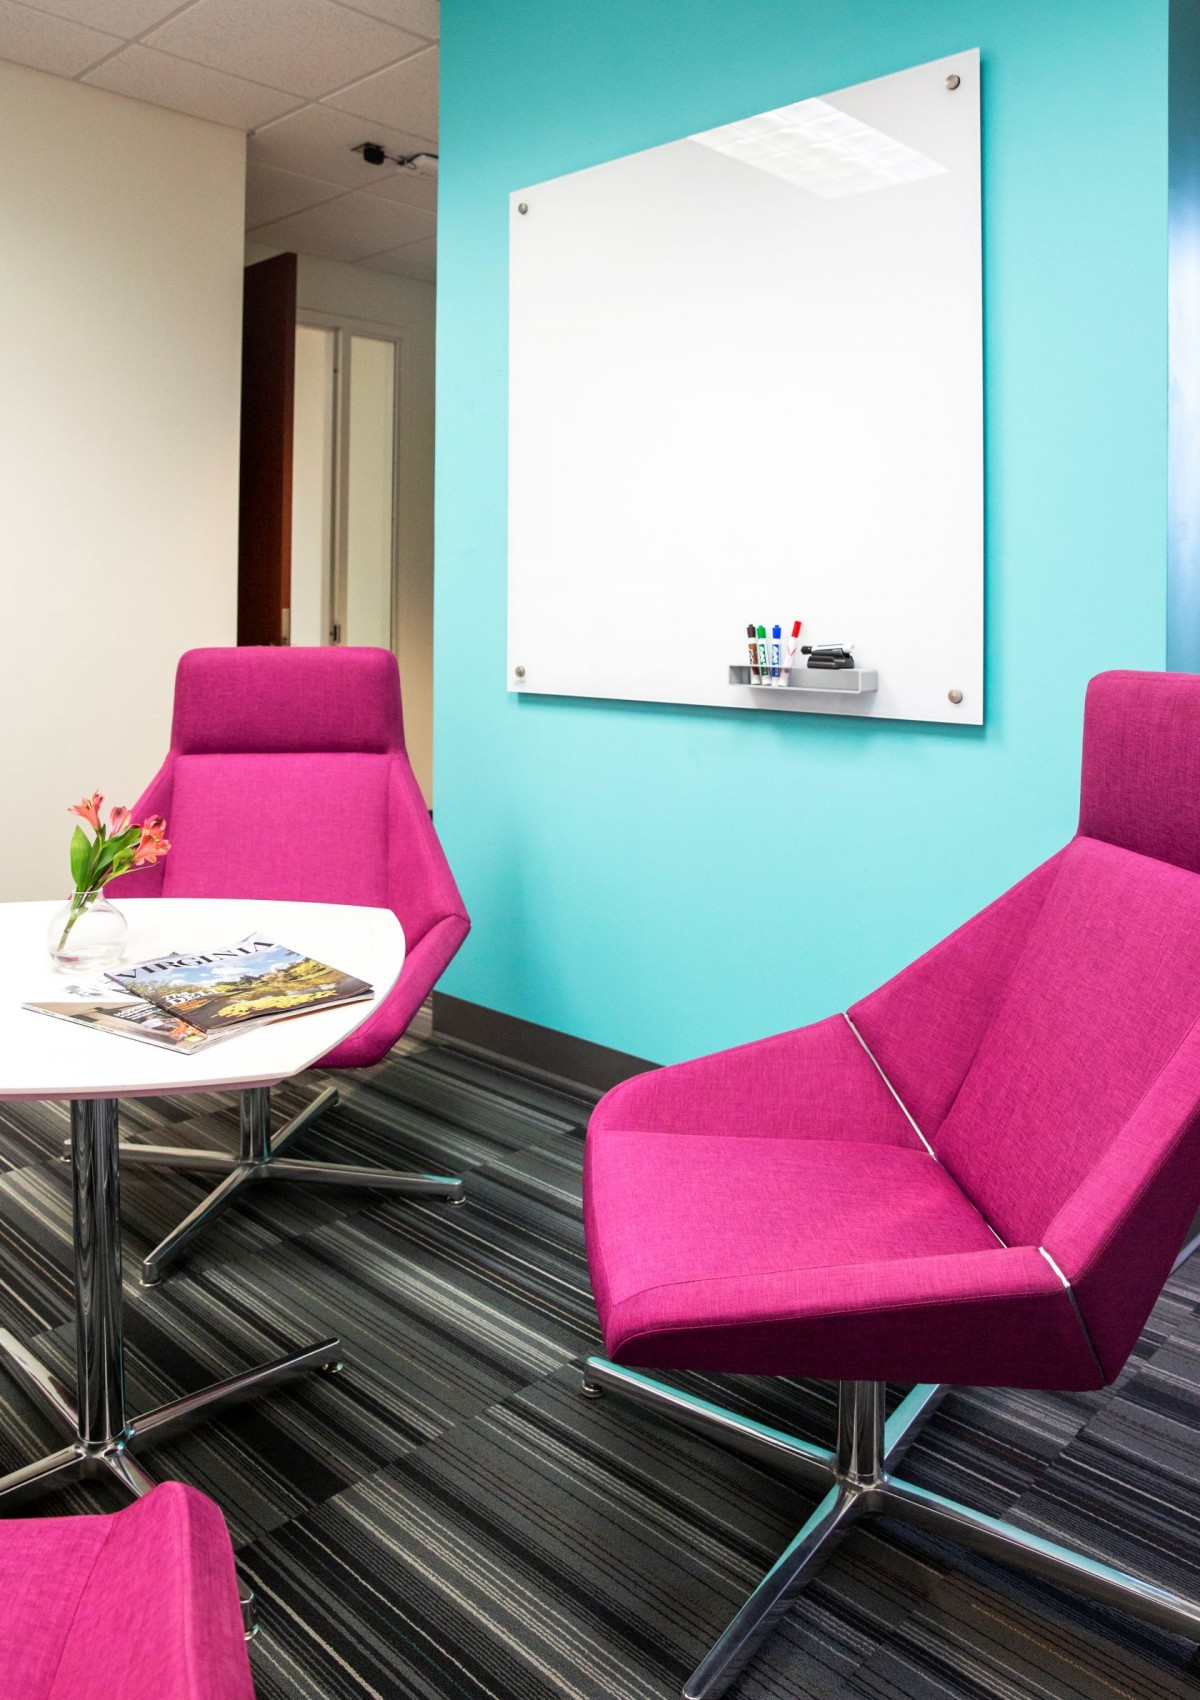 a samll room with futuristic bright pink club chairs and a glass white board on an aqua wall